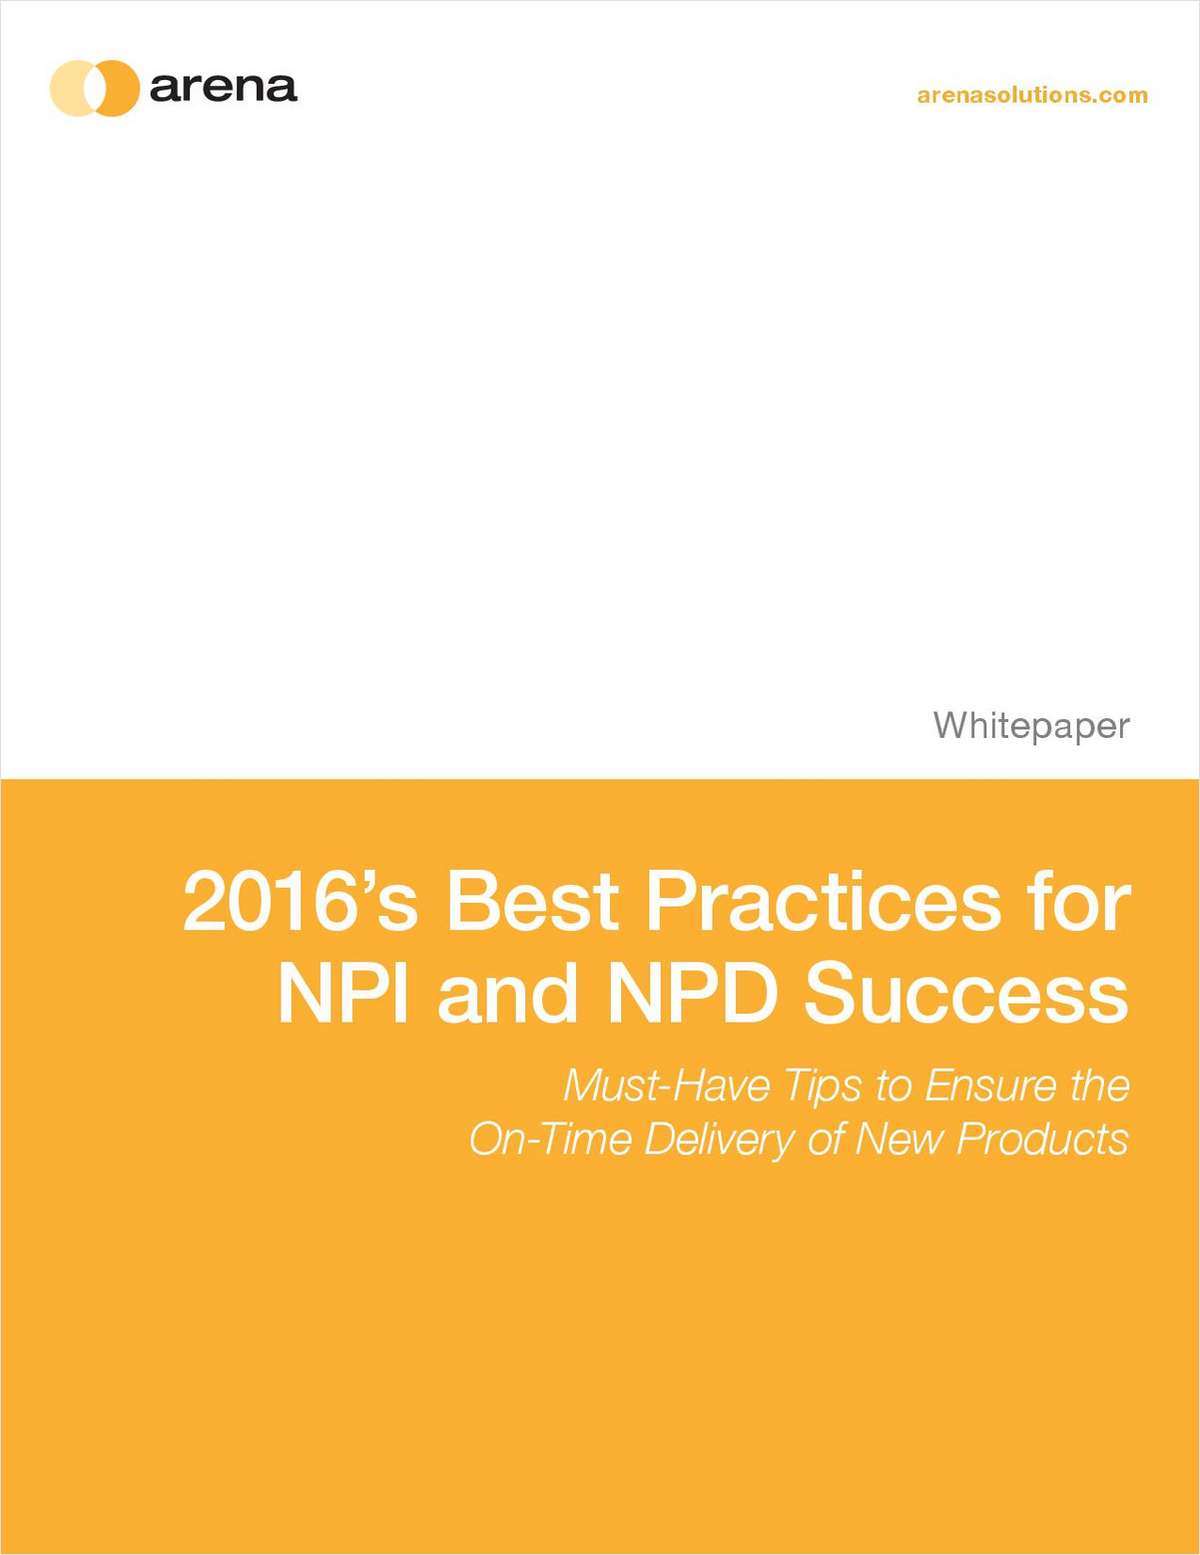 2016 Best Practices for NPI & NPD Success